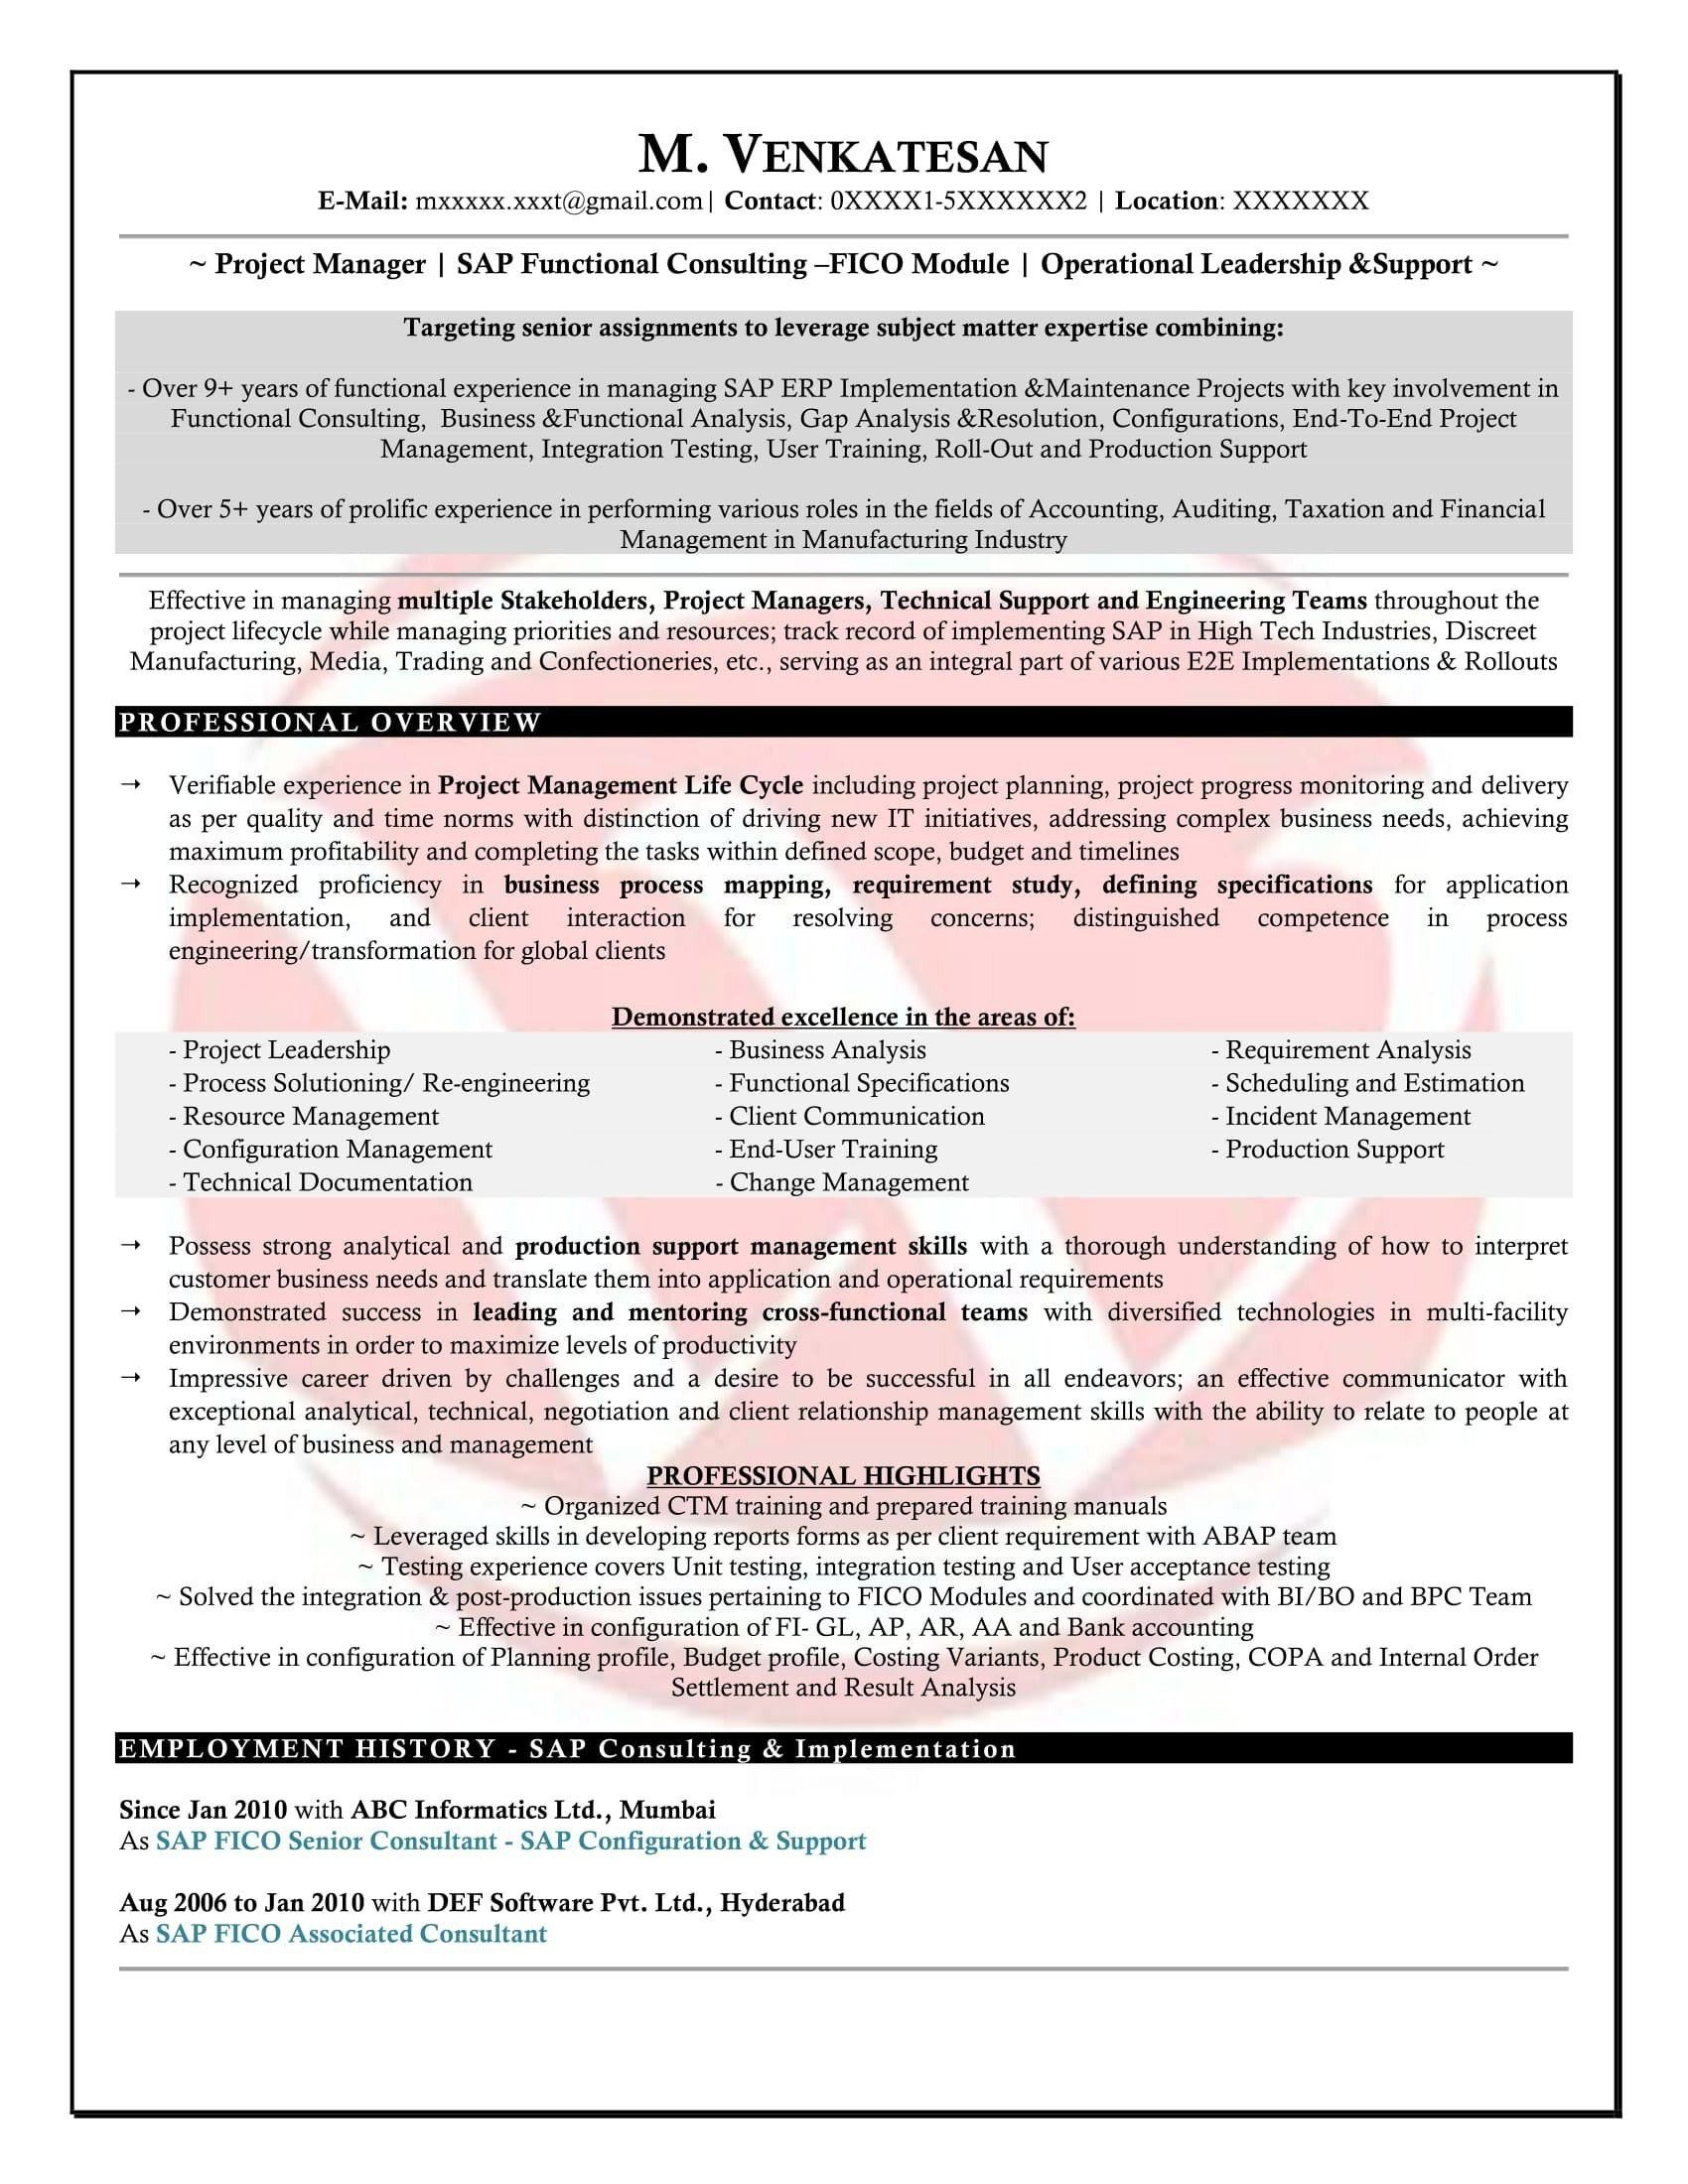 5 Years Experience Resume Beautiful Consulting Resume Template Best Cv Microsoft Word Free